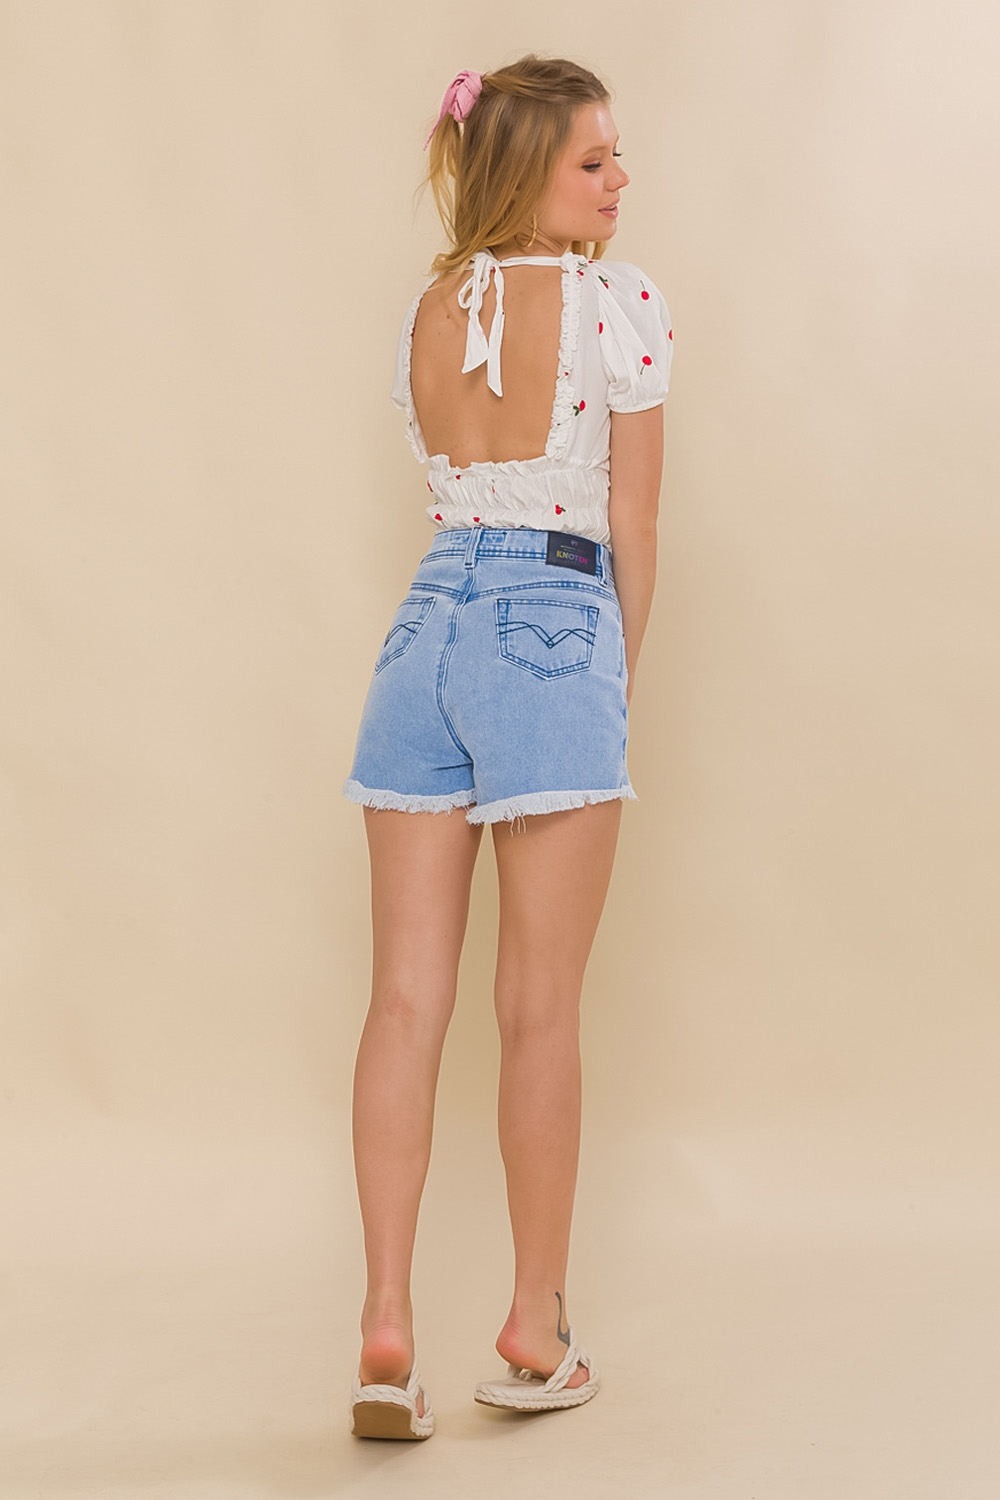 SHORTS JEANS HOT PANT PAOLA - JEANS CLARO